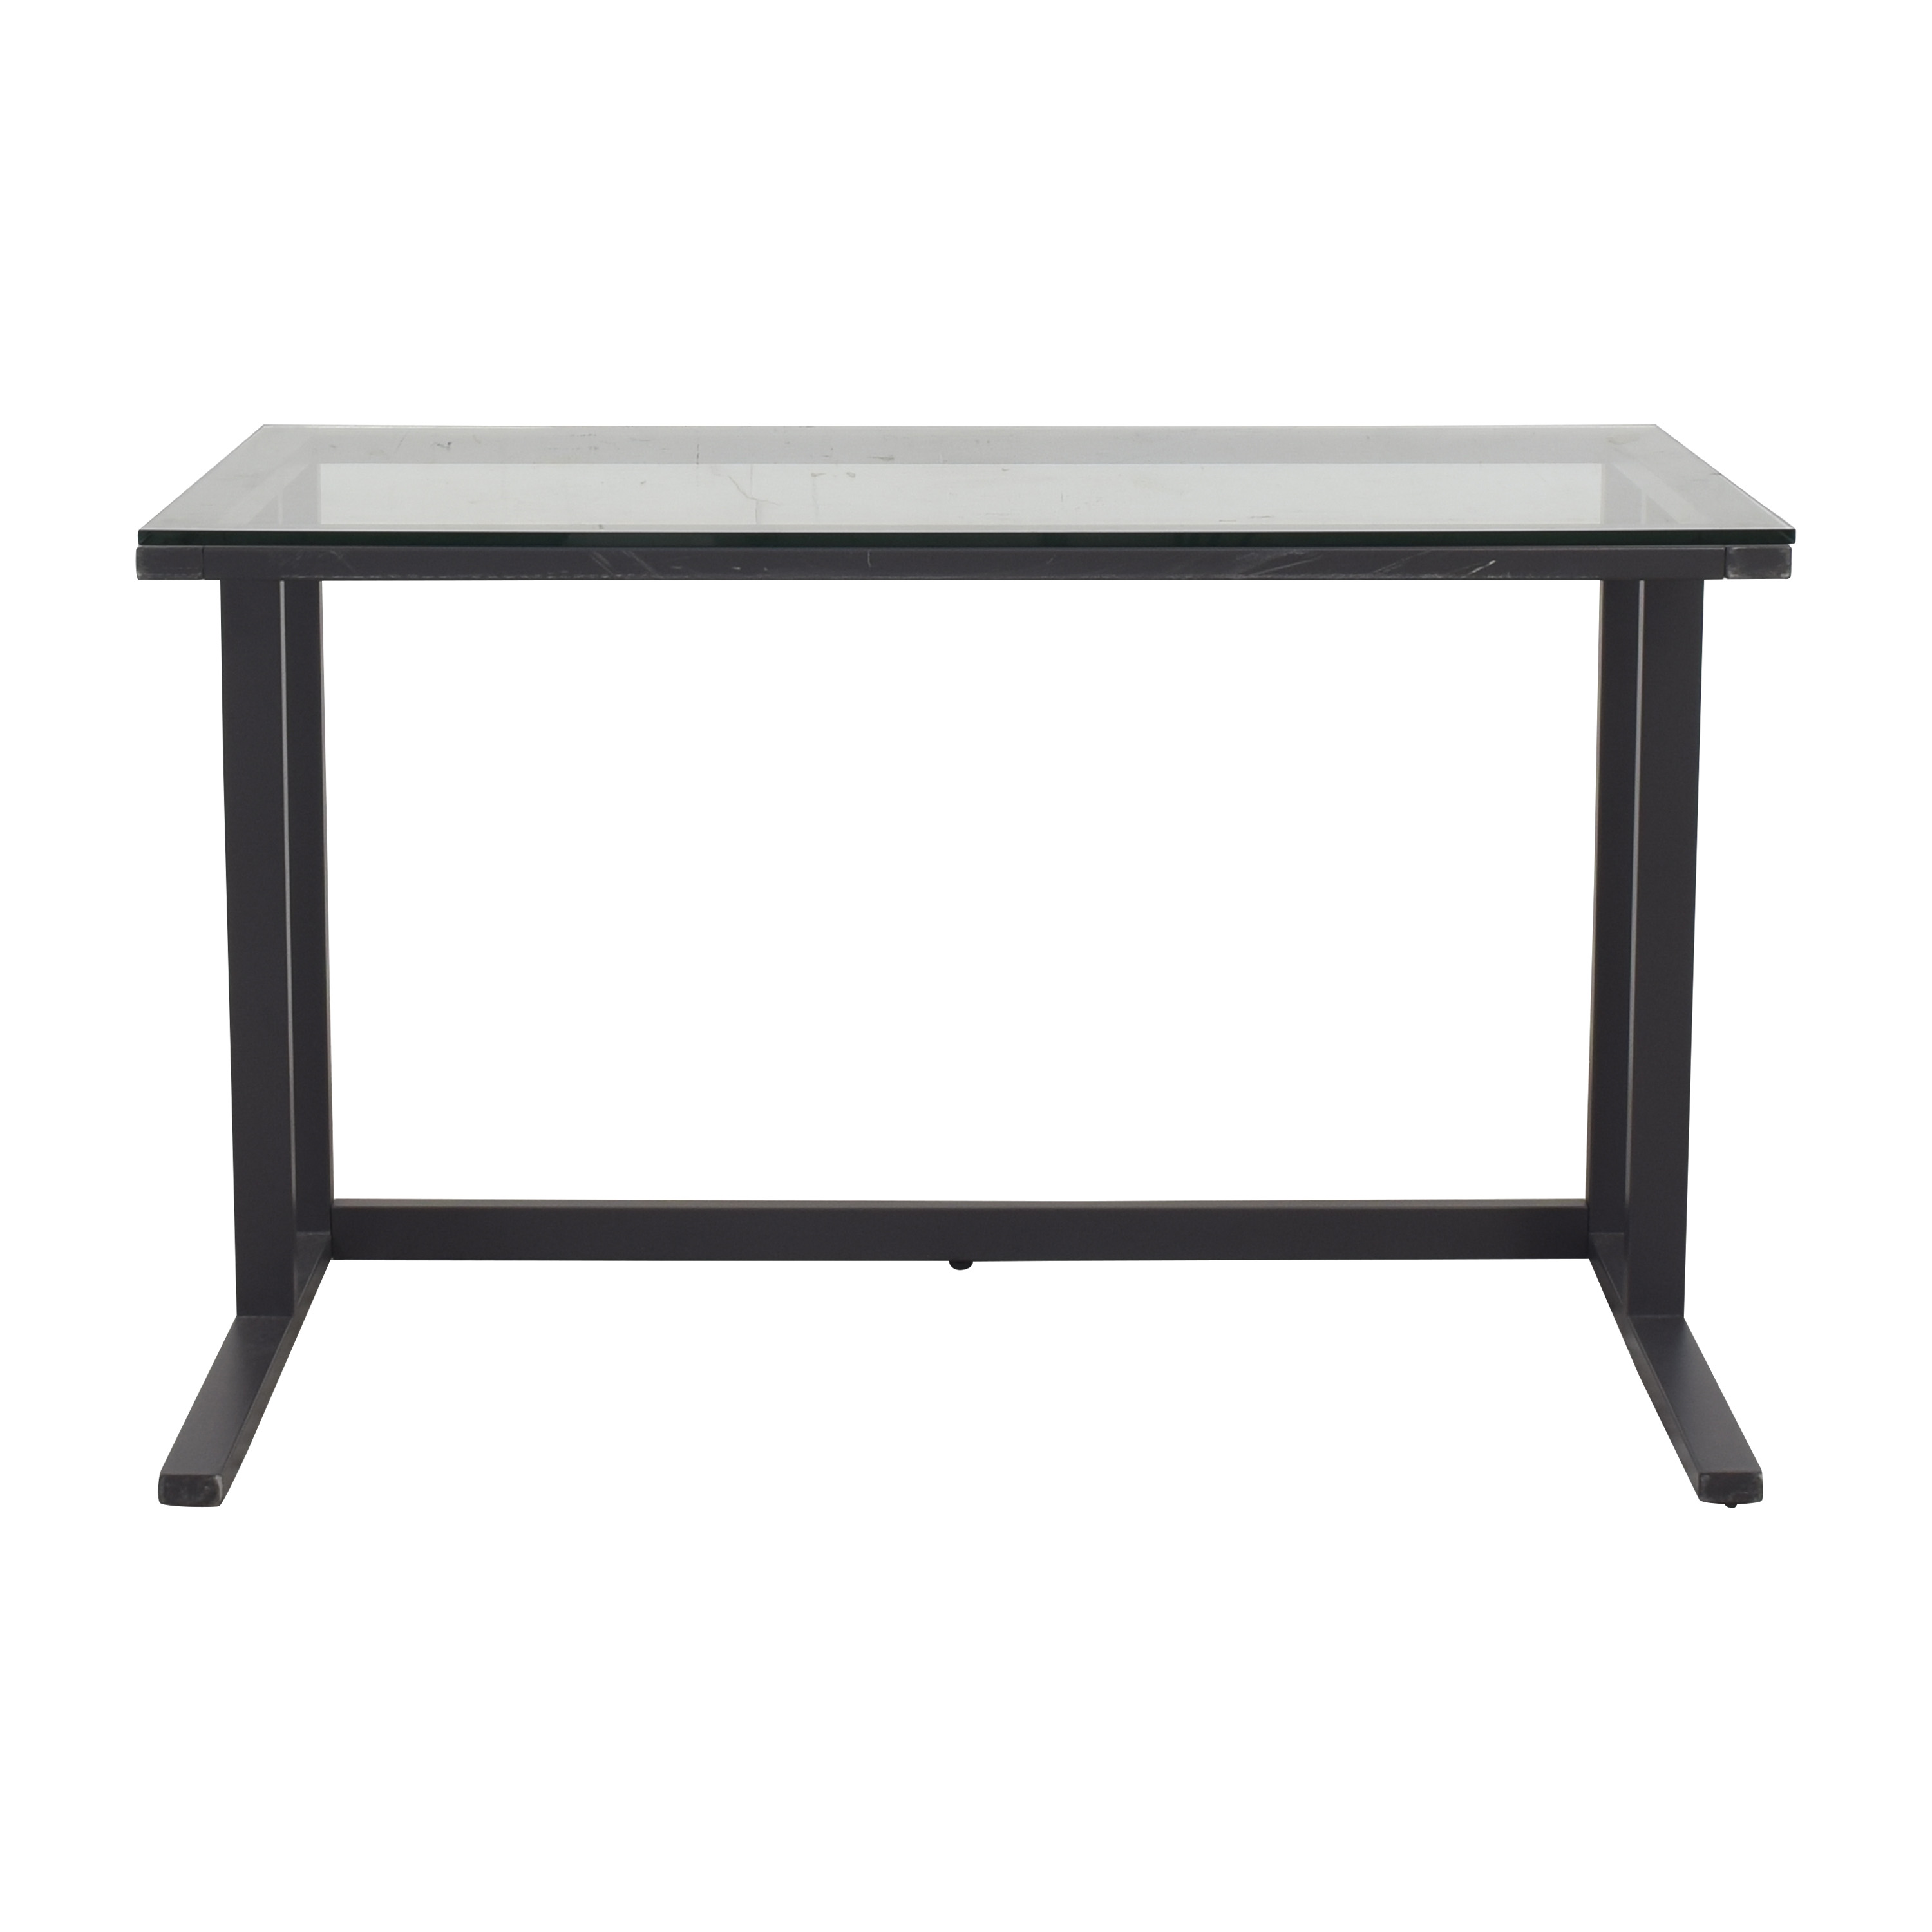 Crate & Barrel Crate & Barrel Pilsen Desk with Transparent Surface black